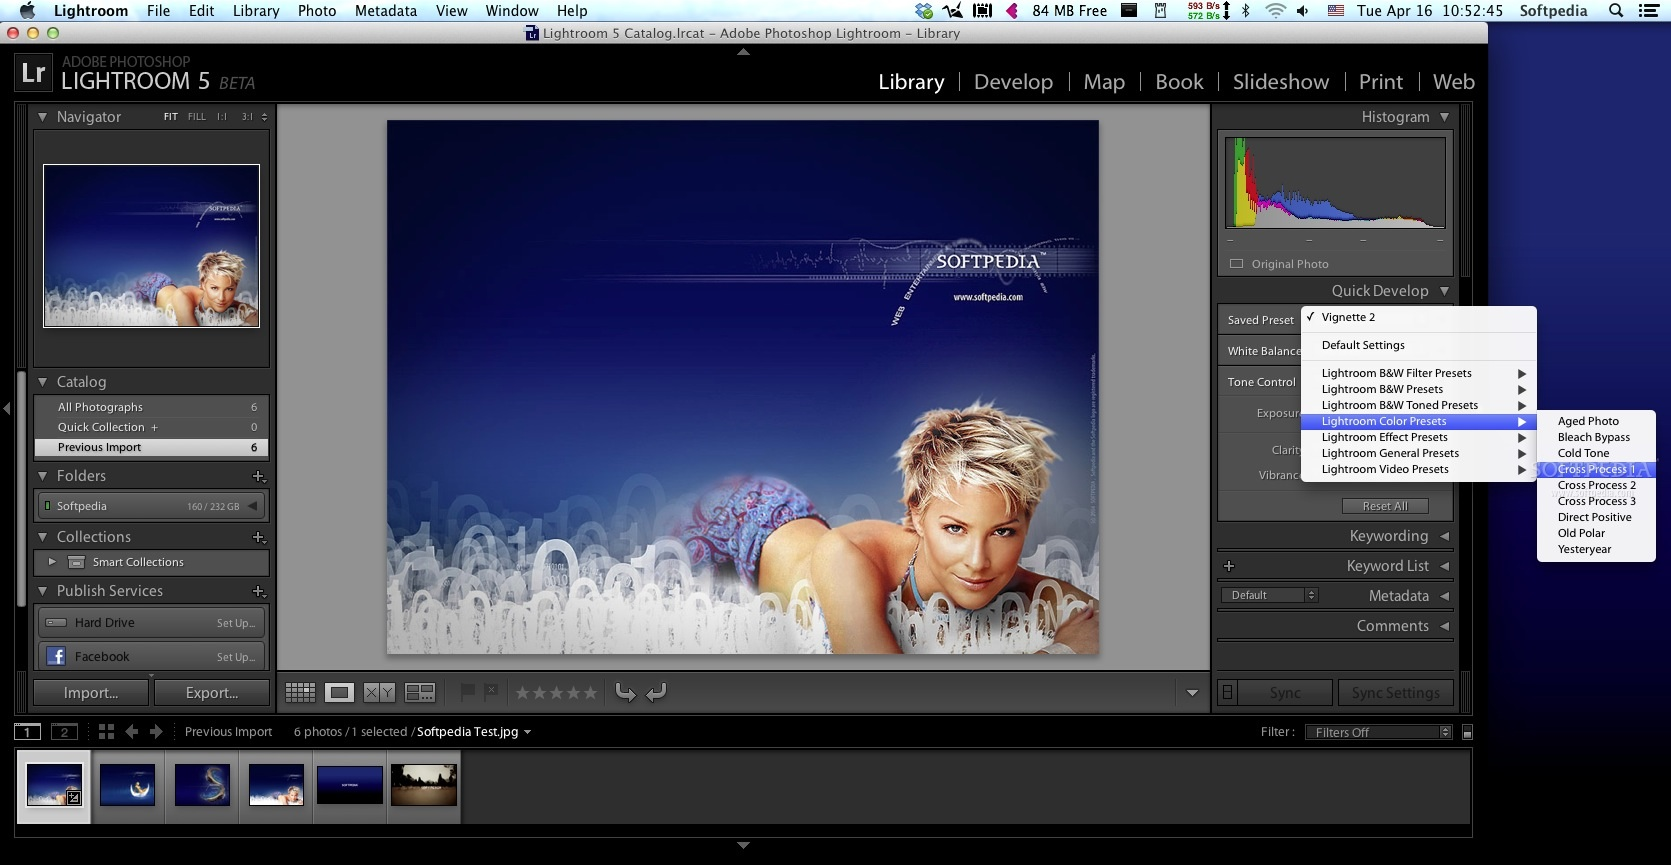 Adobe Lightroom screenshot 3 - From the Quick Develop tab you can access one of the available filter, color, effect and video presets.